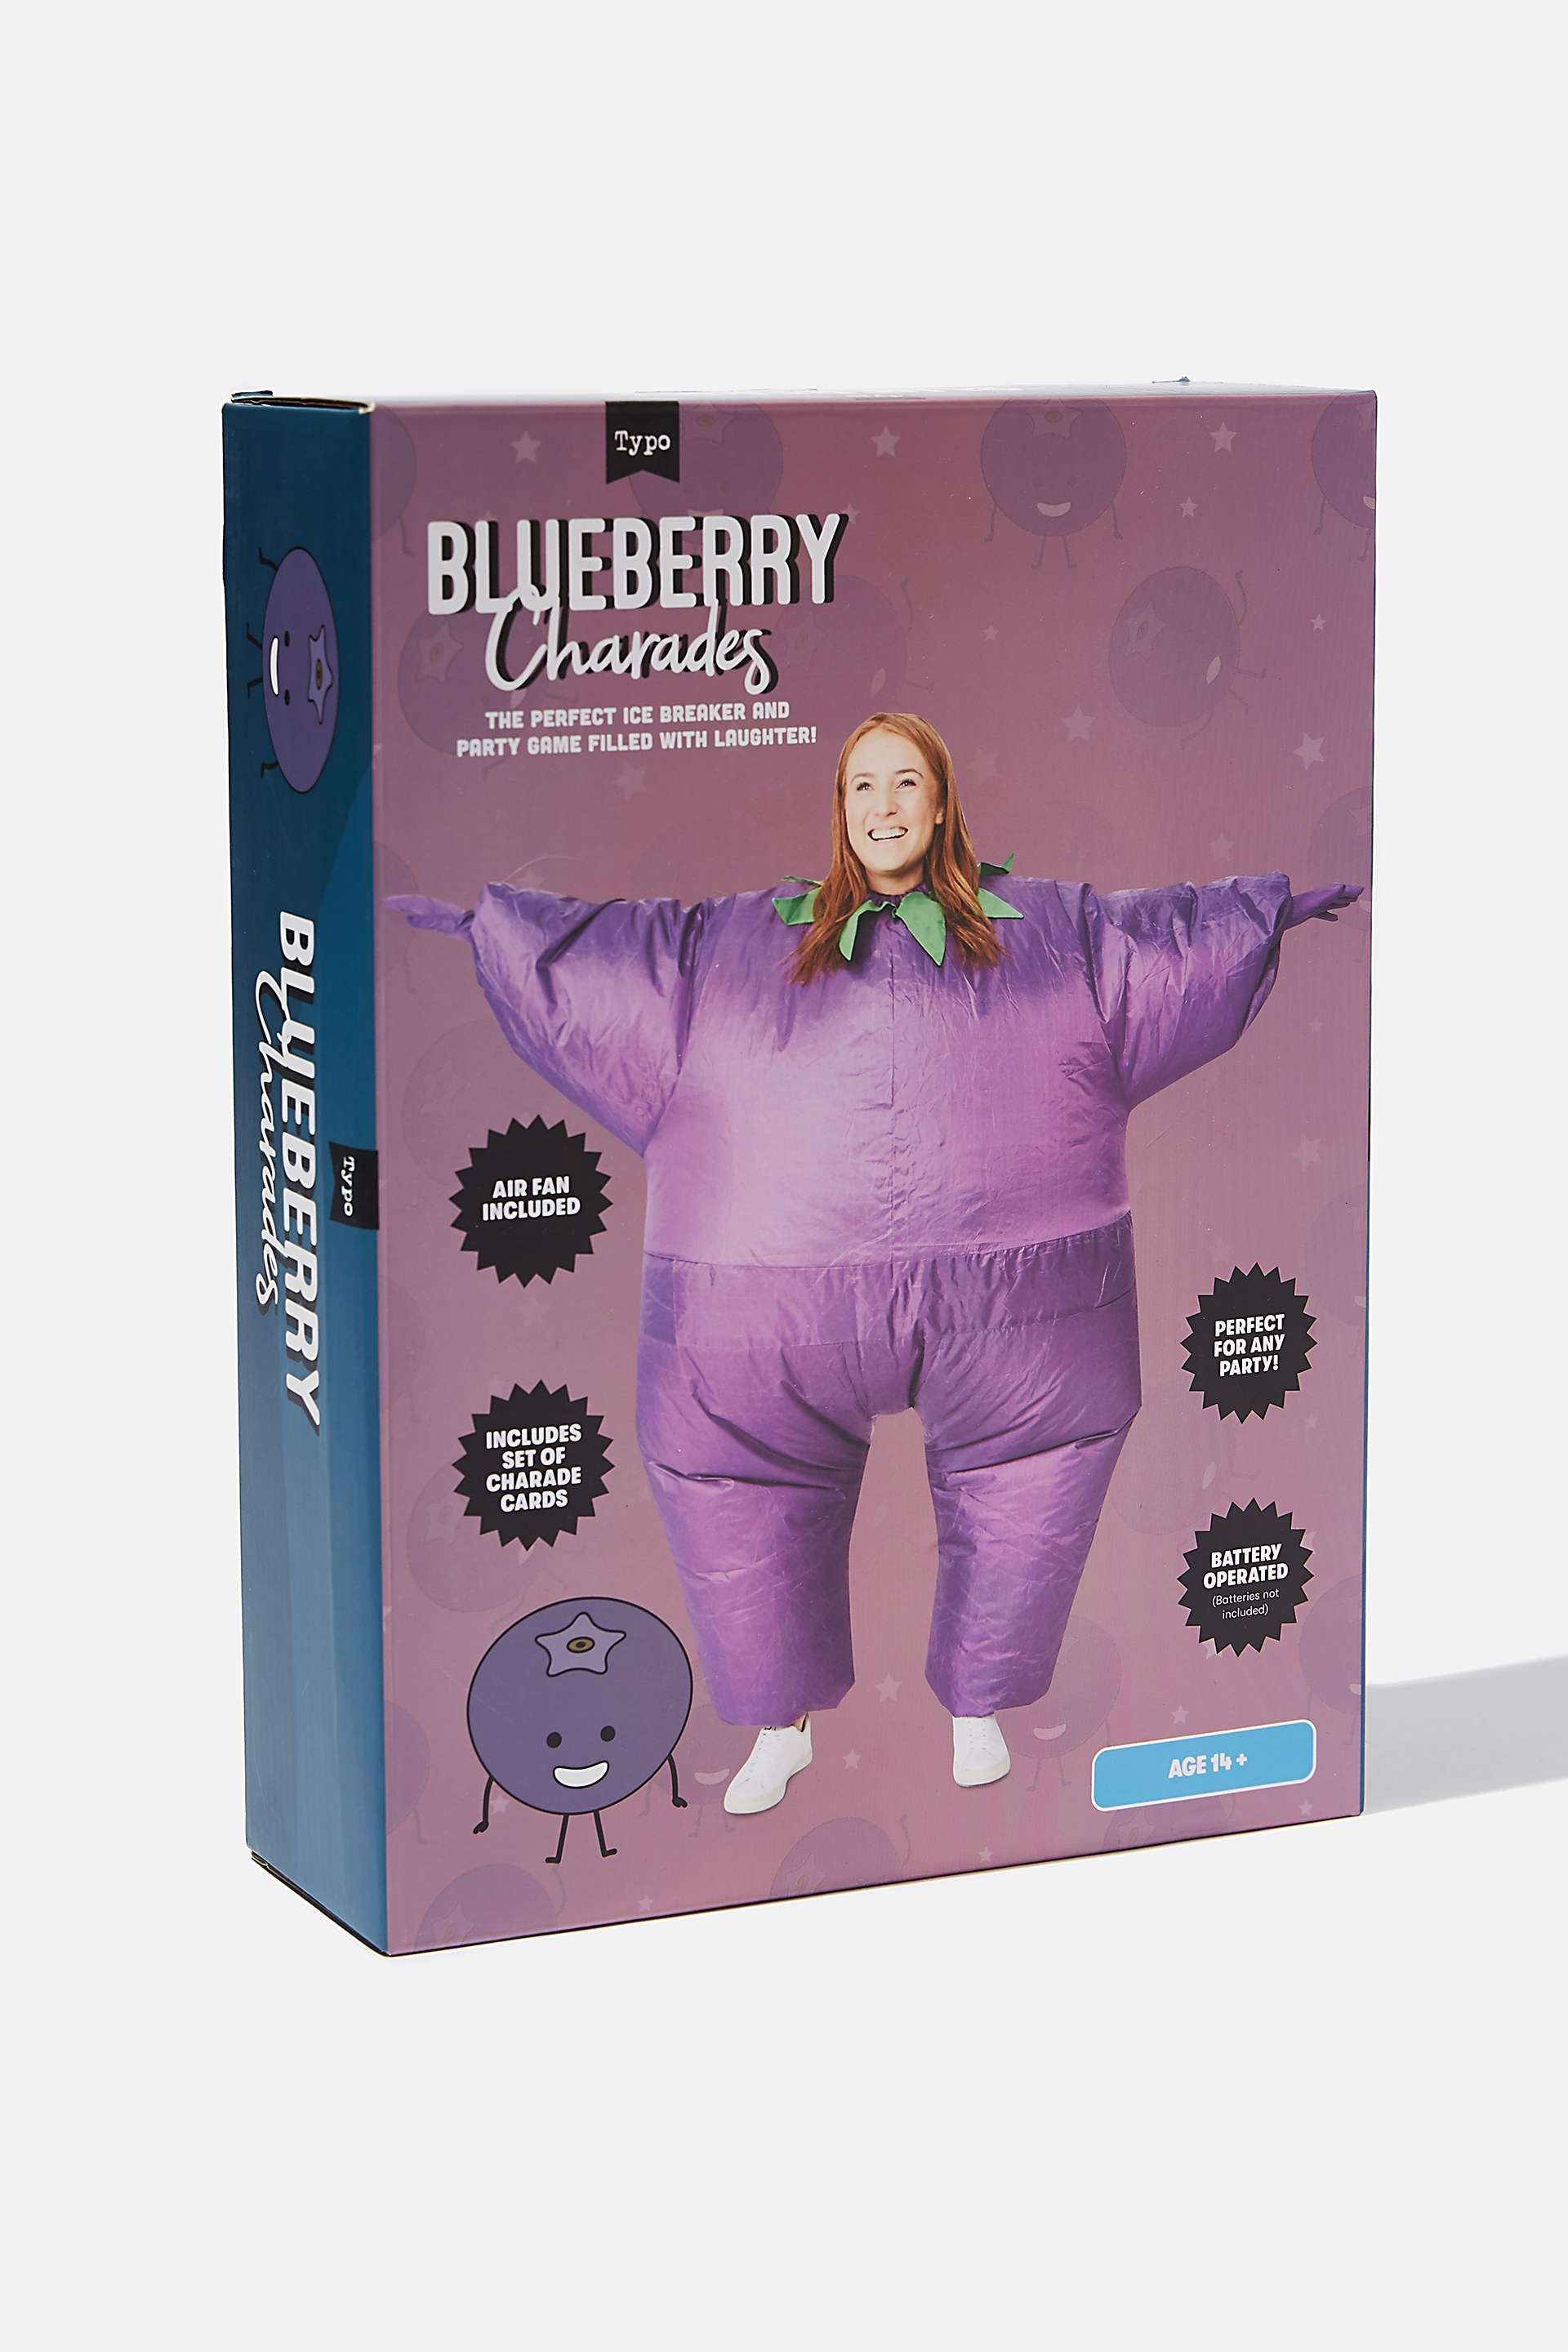 Typo - Inflatable Charades Game - Blueberry charades